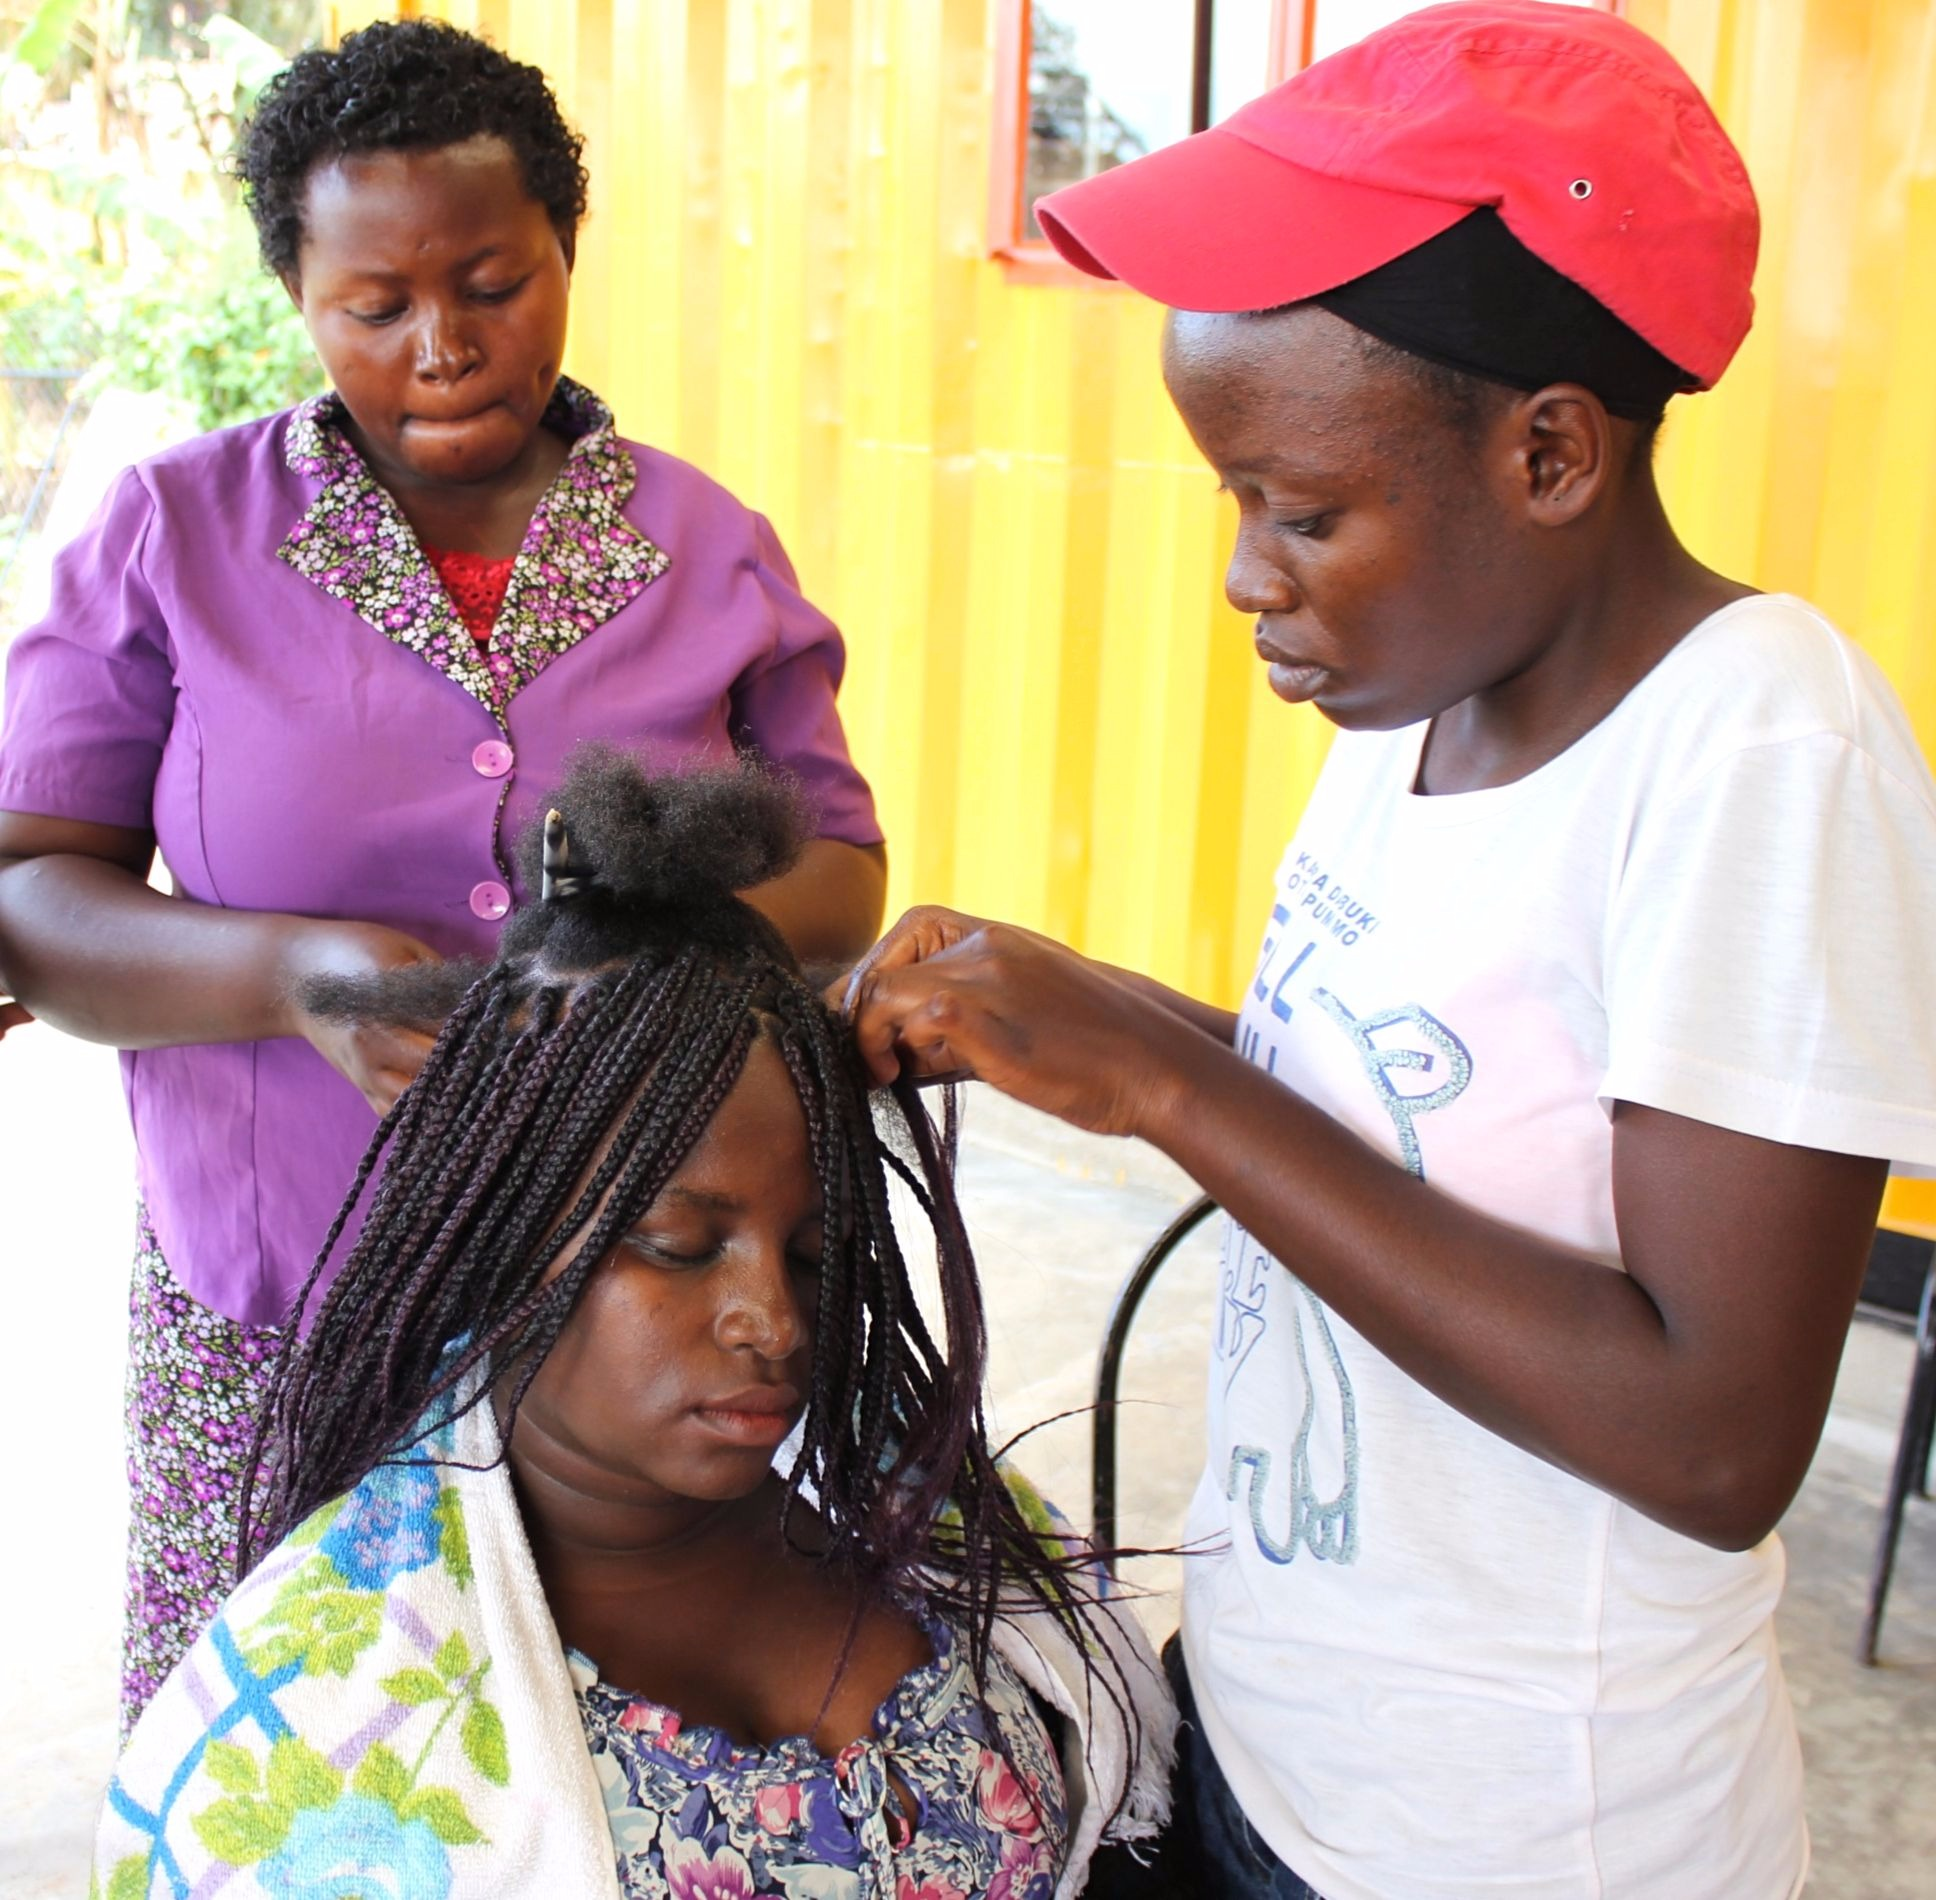 Hairdressing: A Booming Industry in Uganda